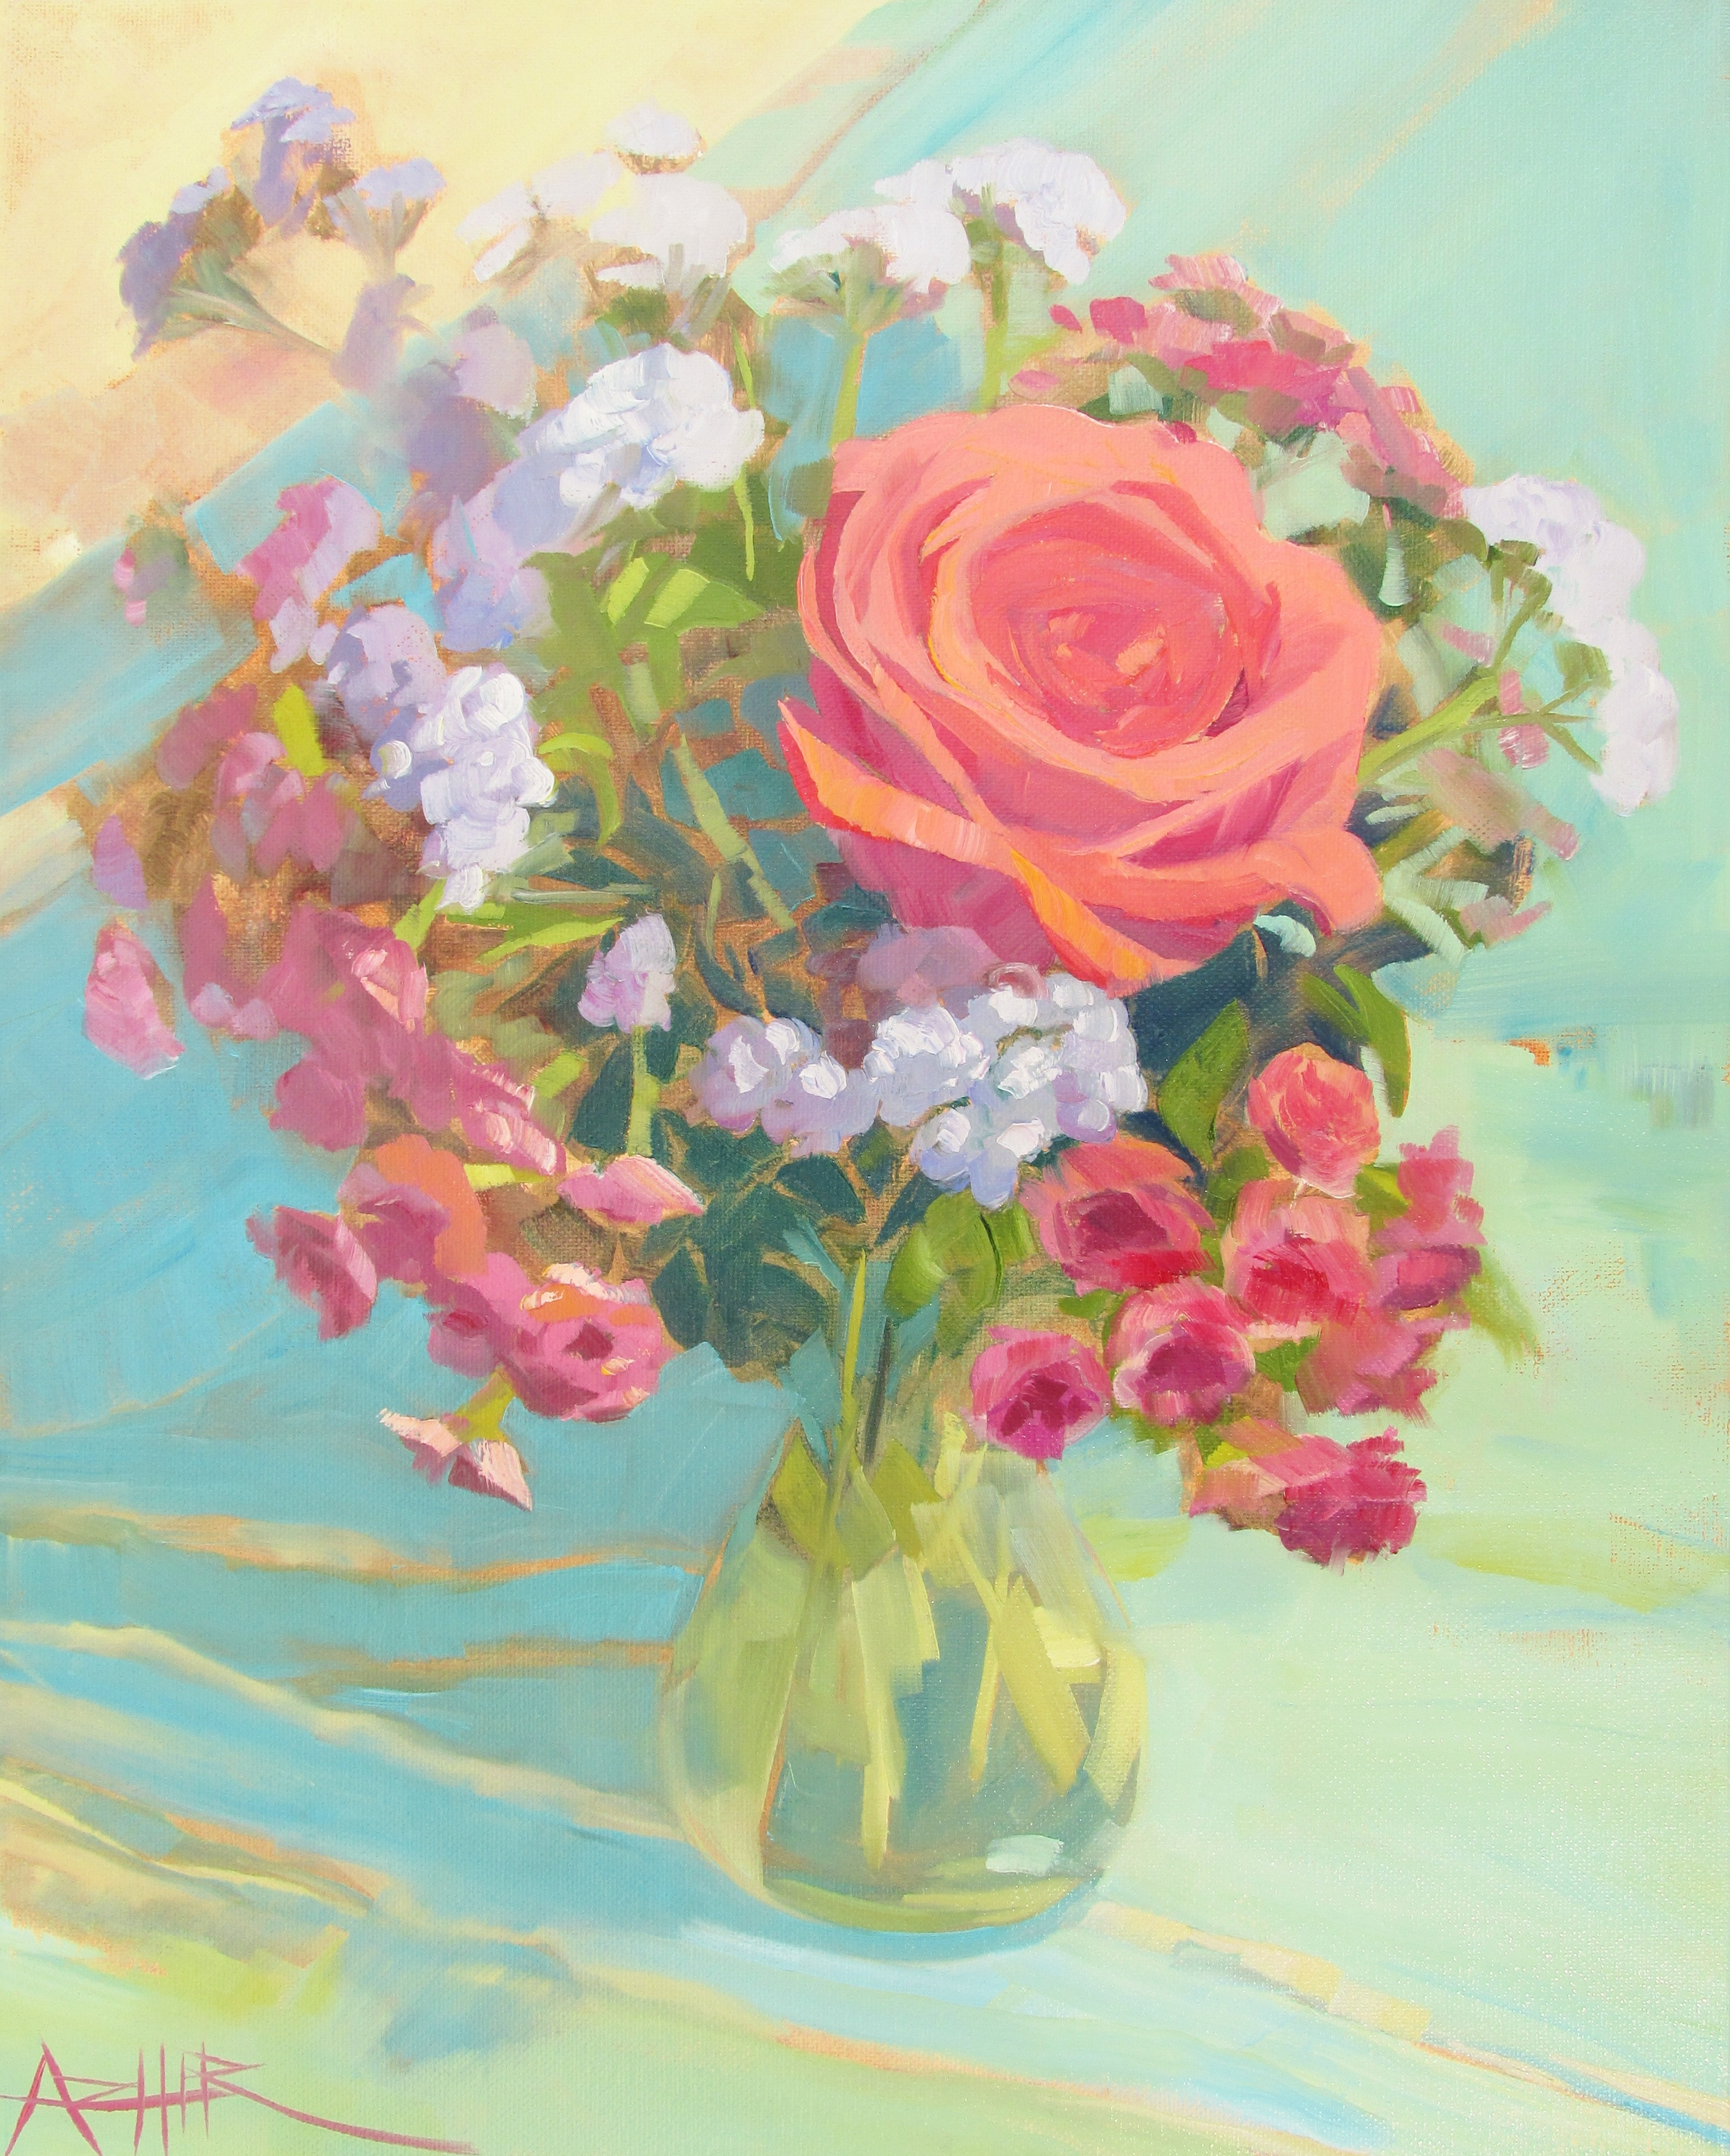 """SOLD, The Heart of Roses, Copyright 2015 Hirschten, Oil on Canvas, 16"""" x 20"""""""